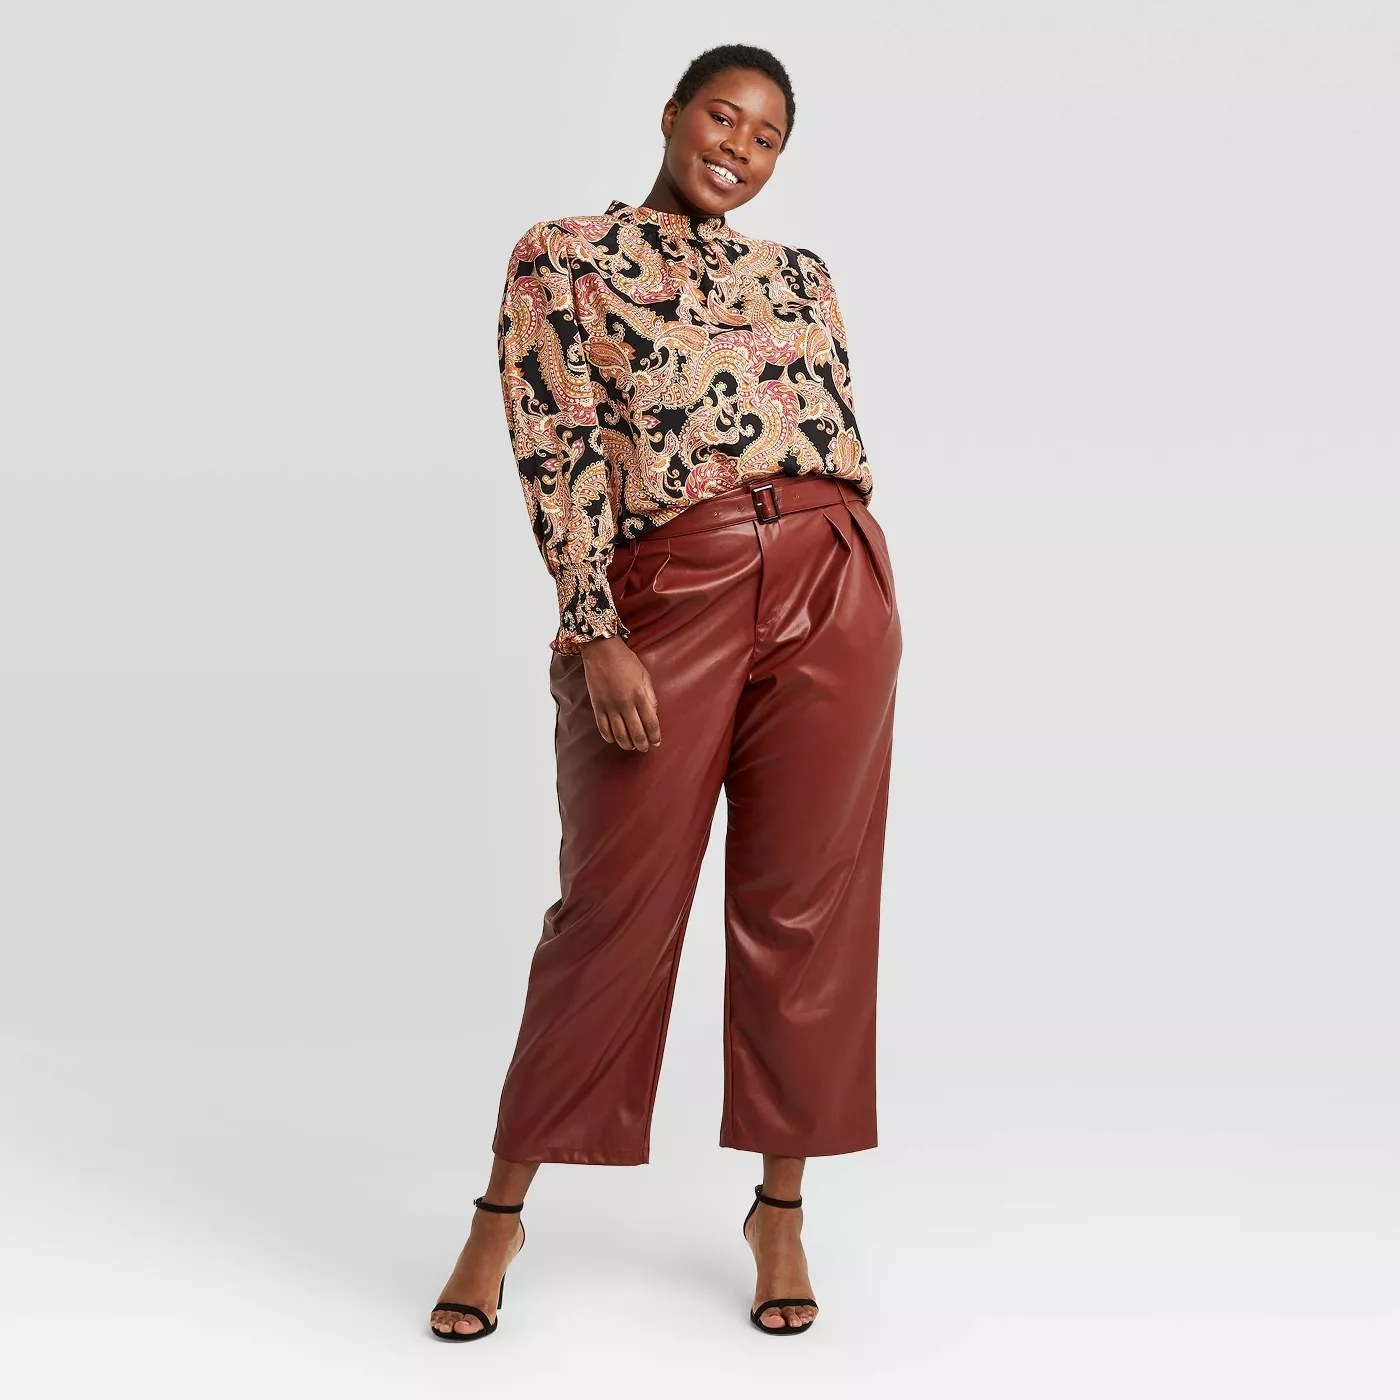 The pants in brown